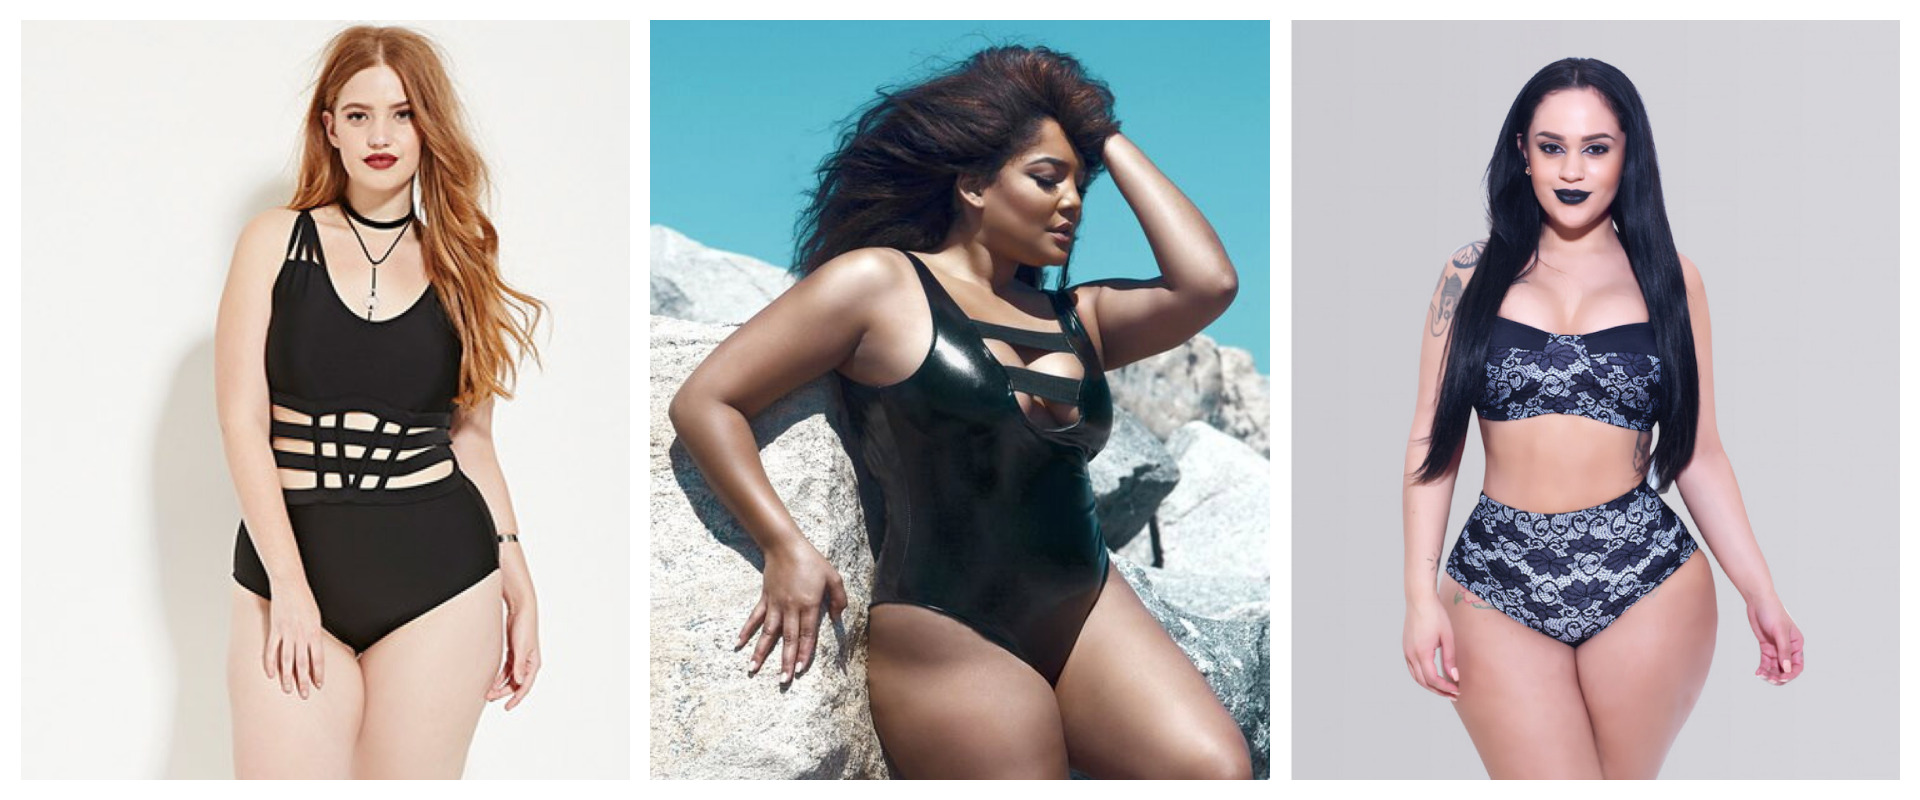 5 Gothic Inspired Swimsuits to Swoon Over